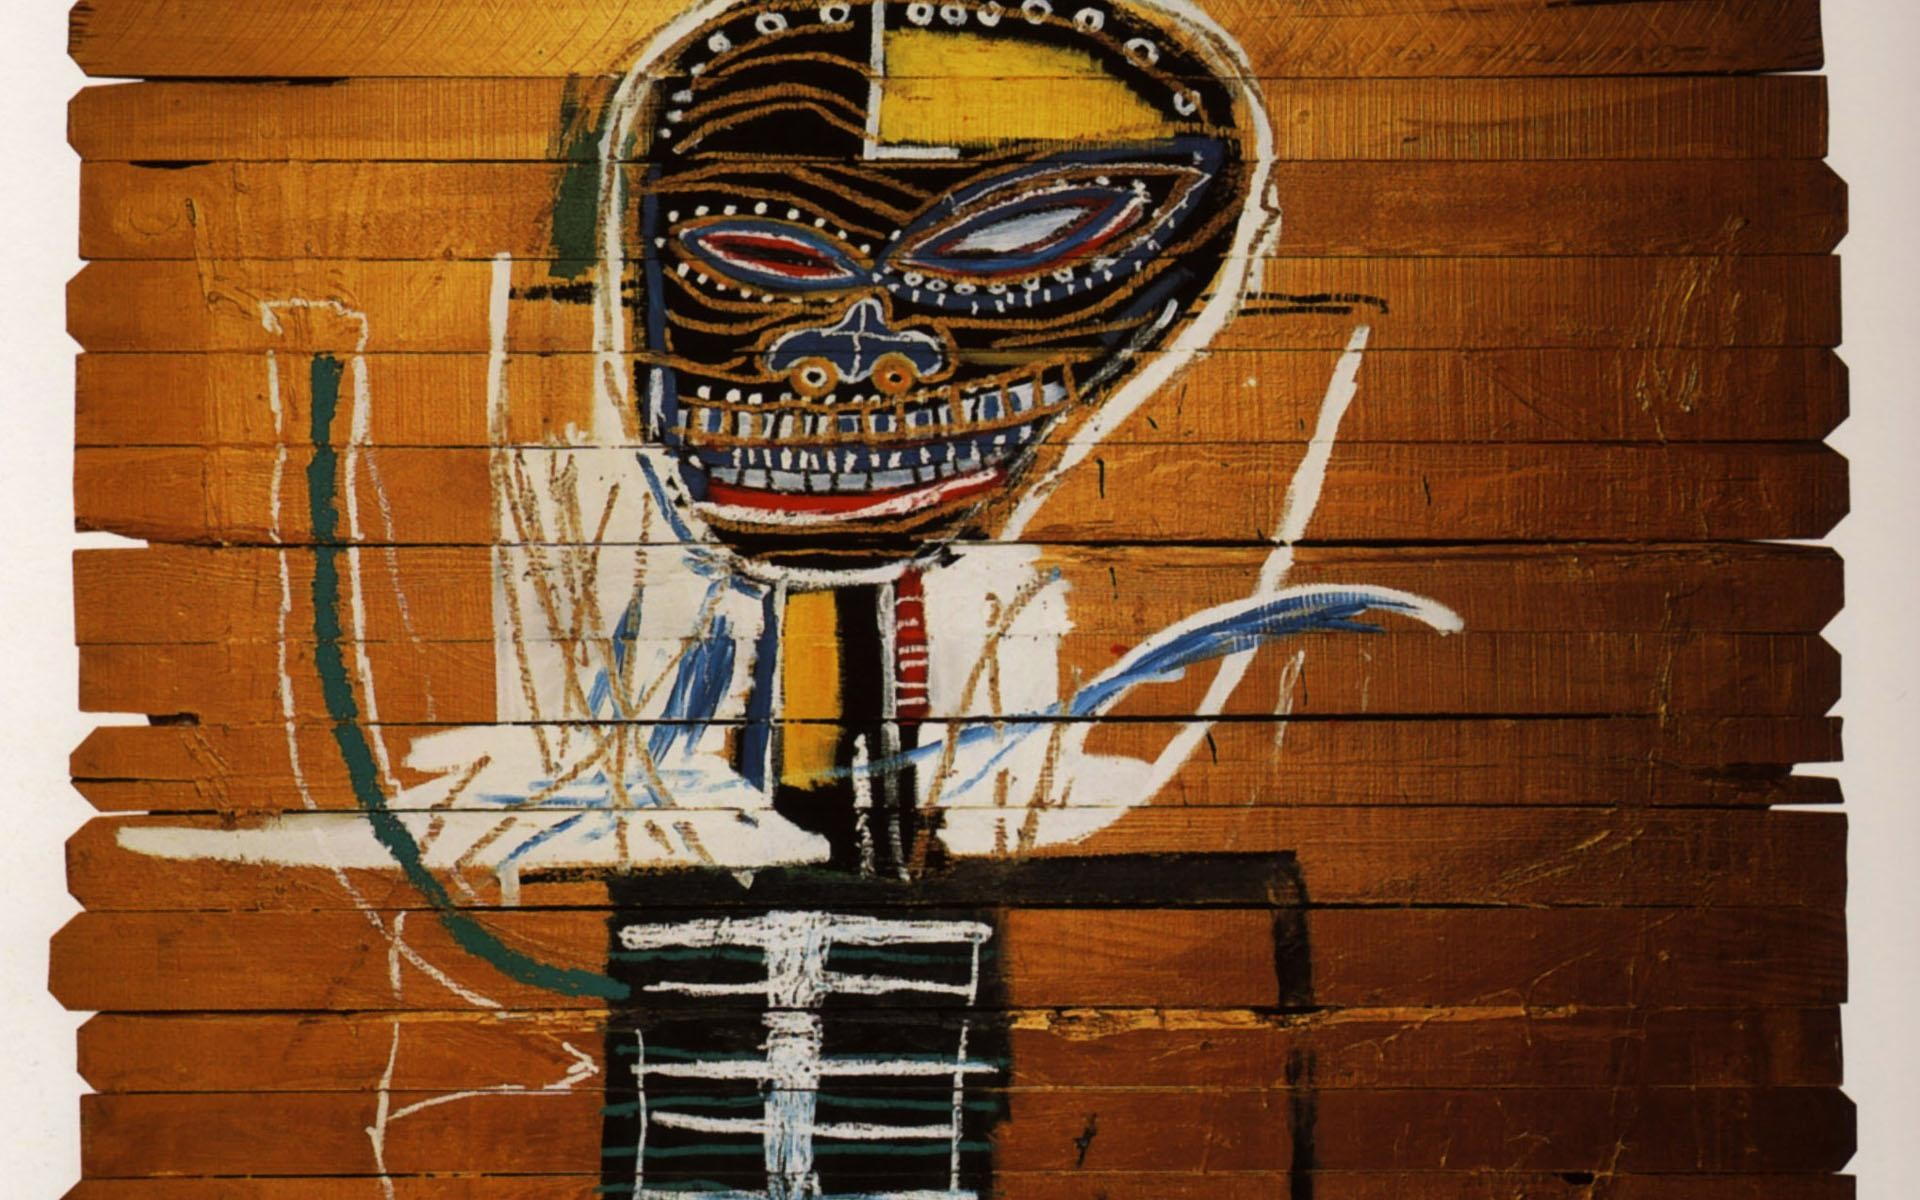 Jean-Michel Basquiat Wallpaper, Gold Griot